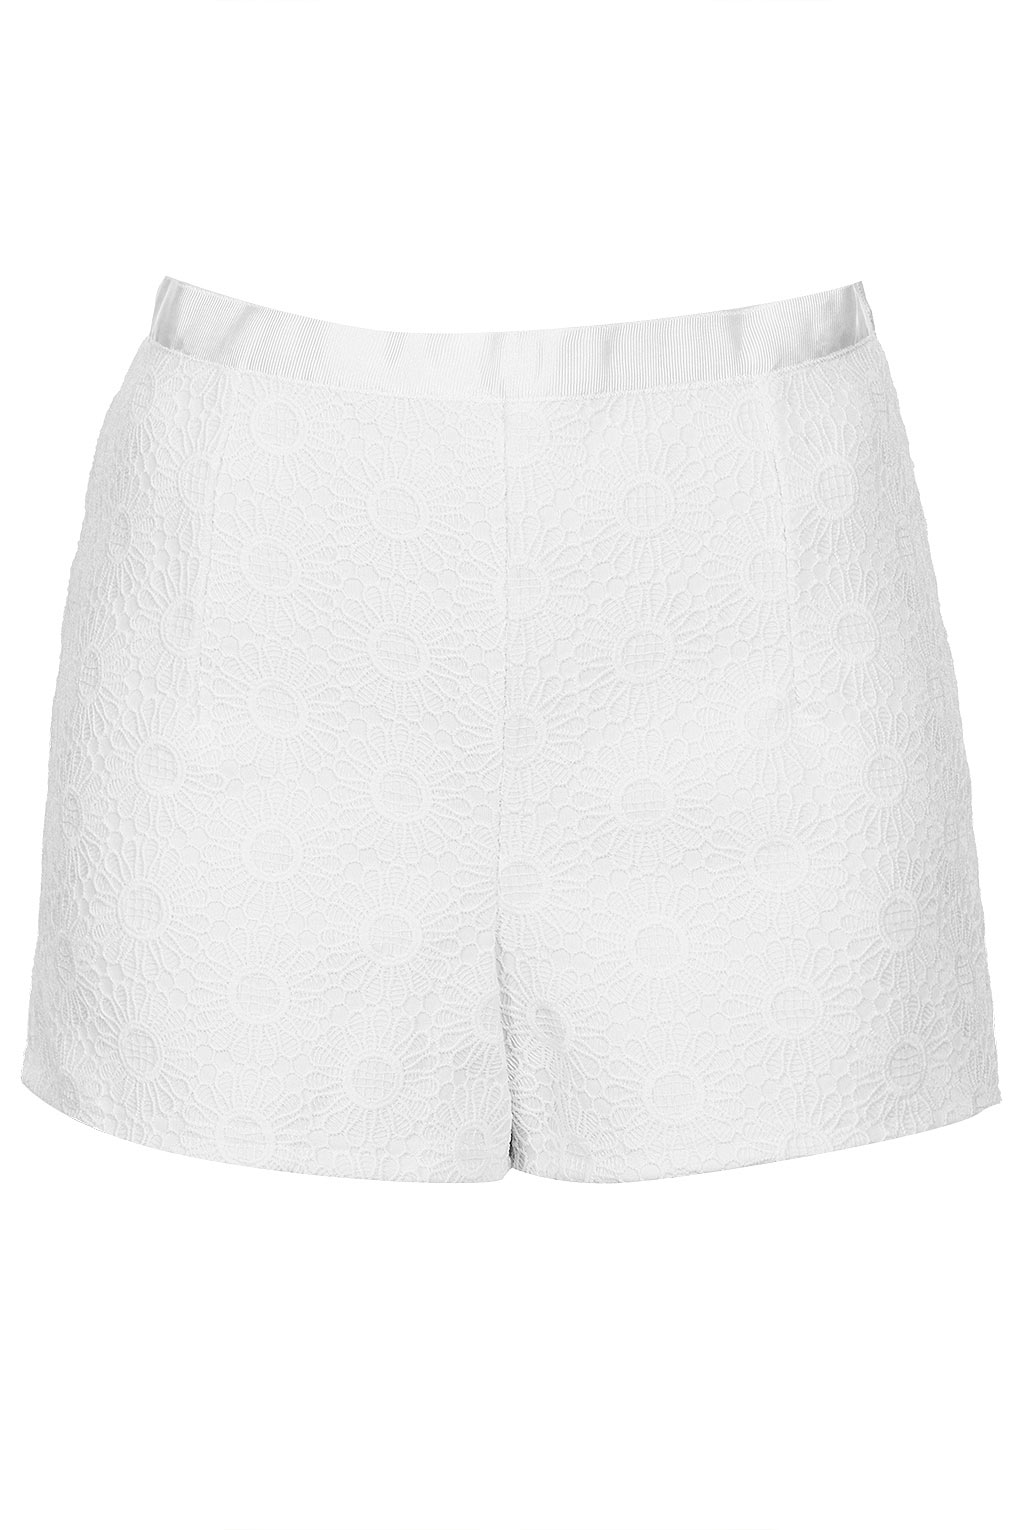 White Lace High Waisted Shorts - The Else